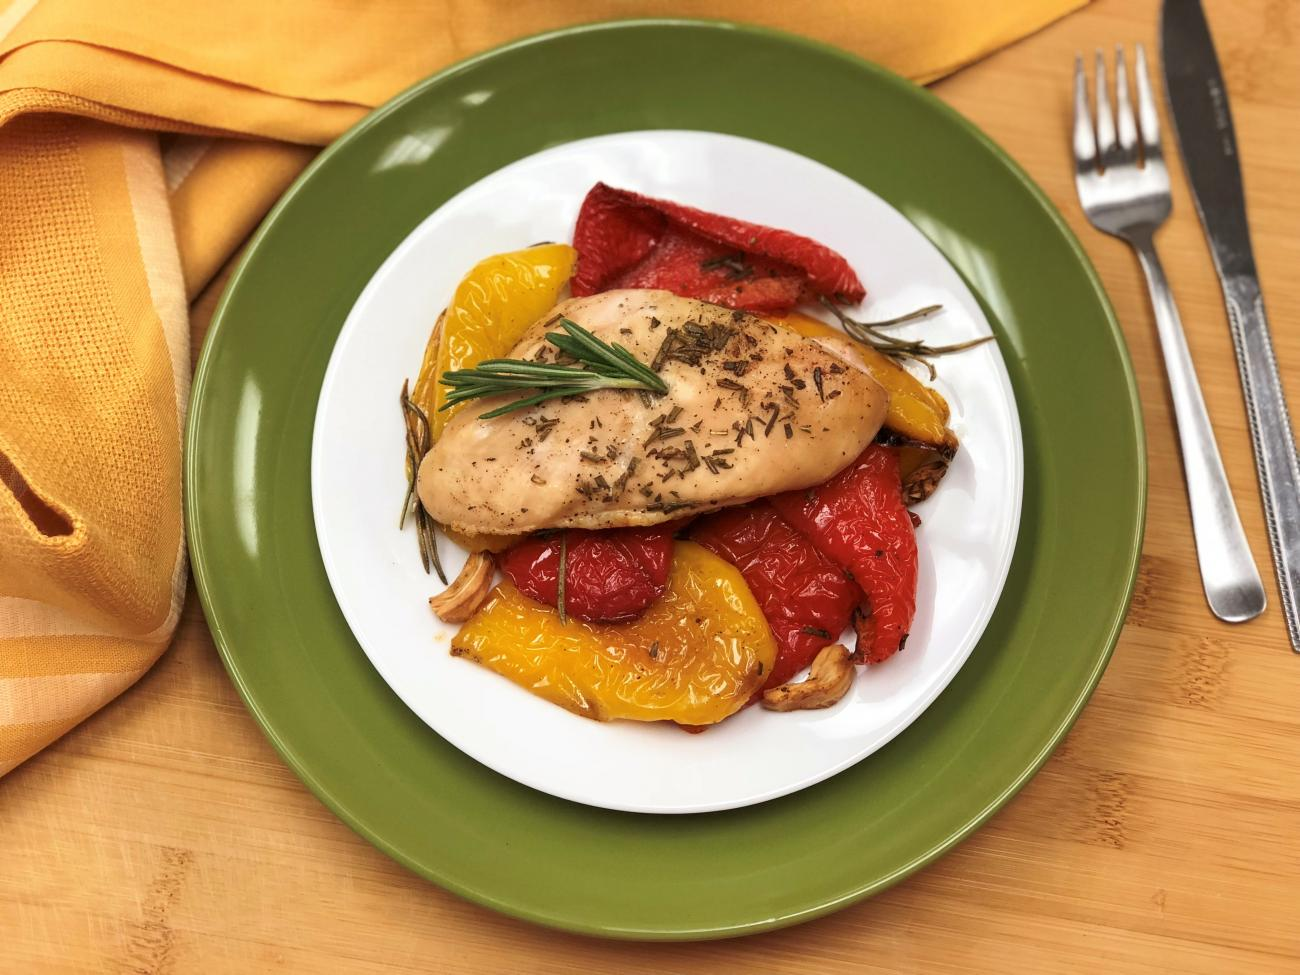 Recipe for Chicken With Roasted Bell Peppers and Rosemary